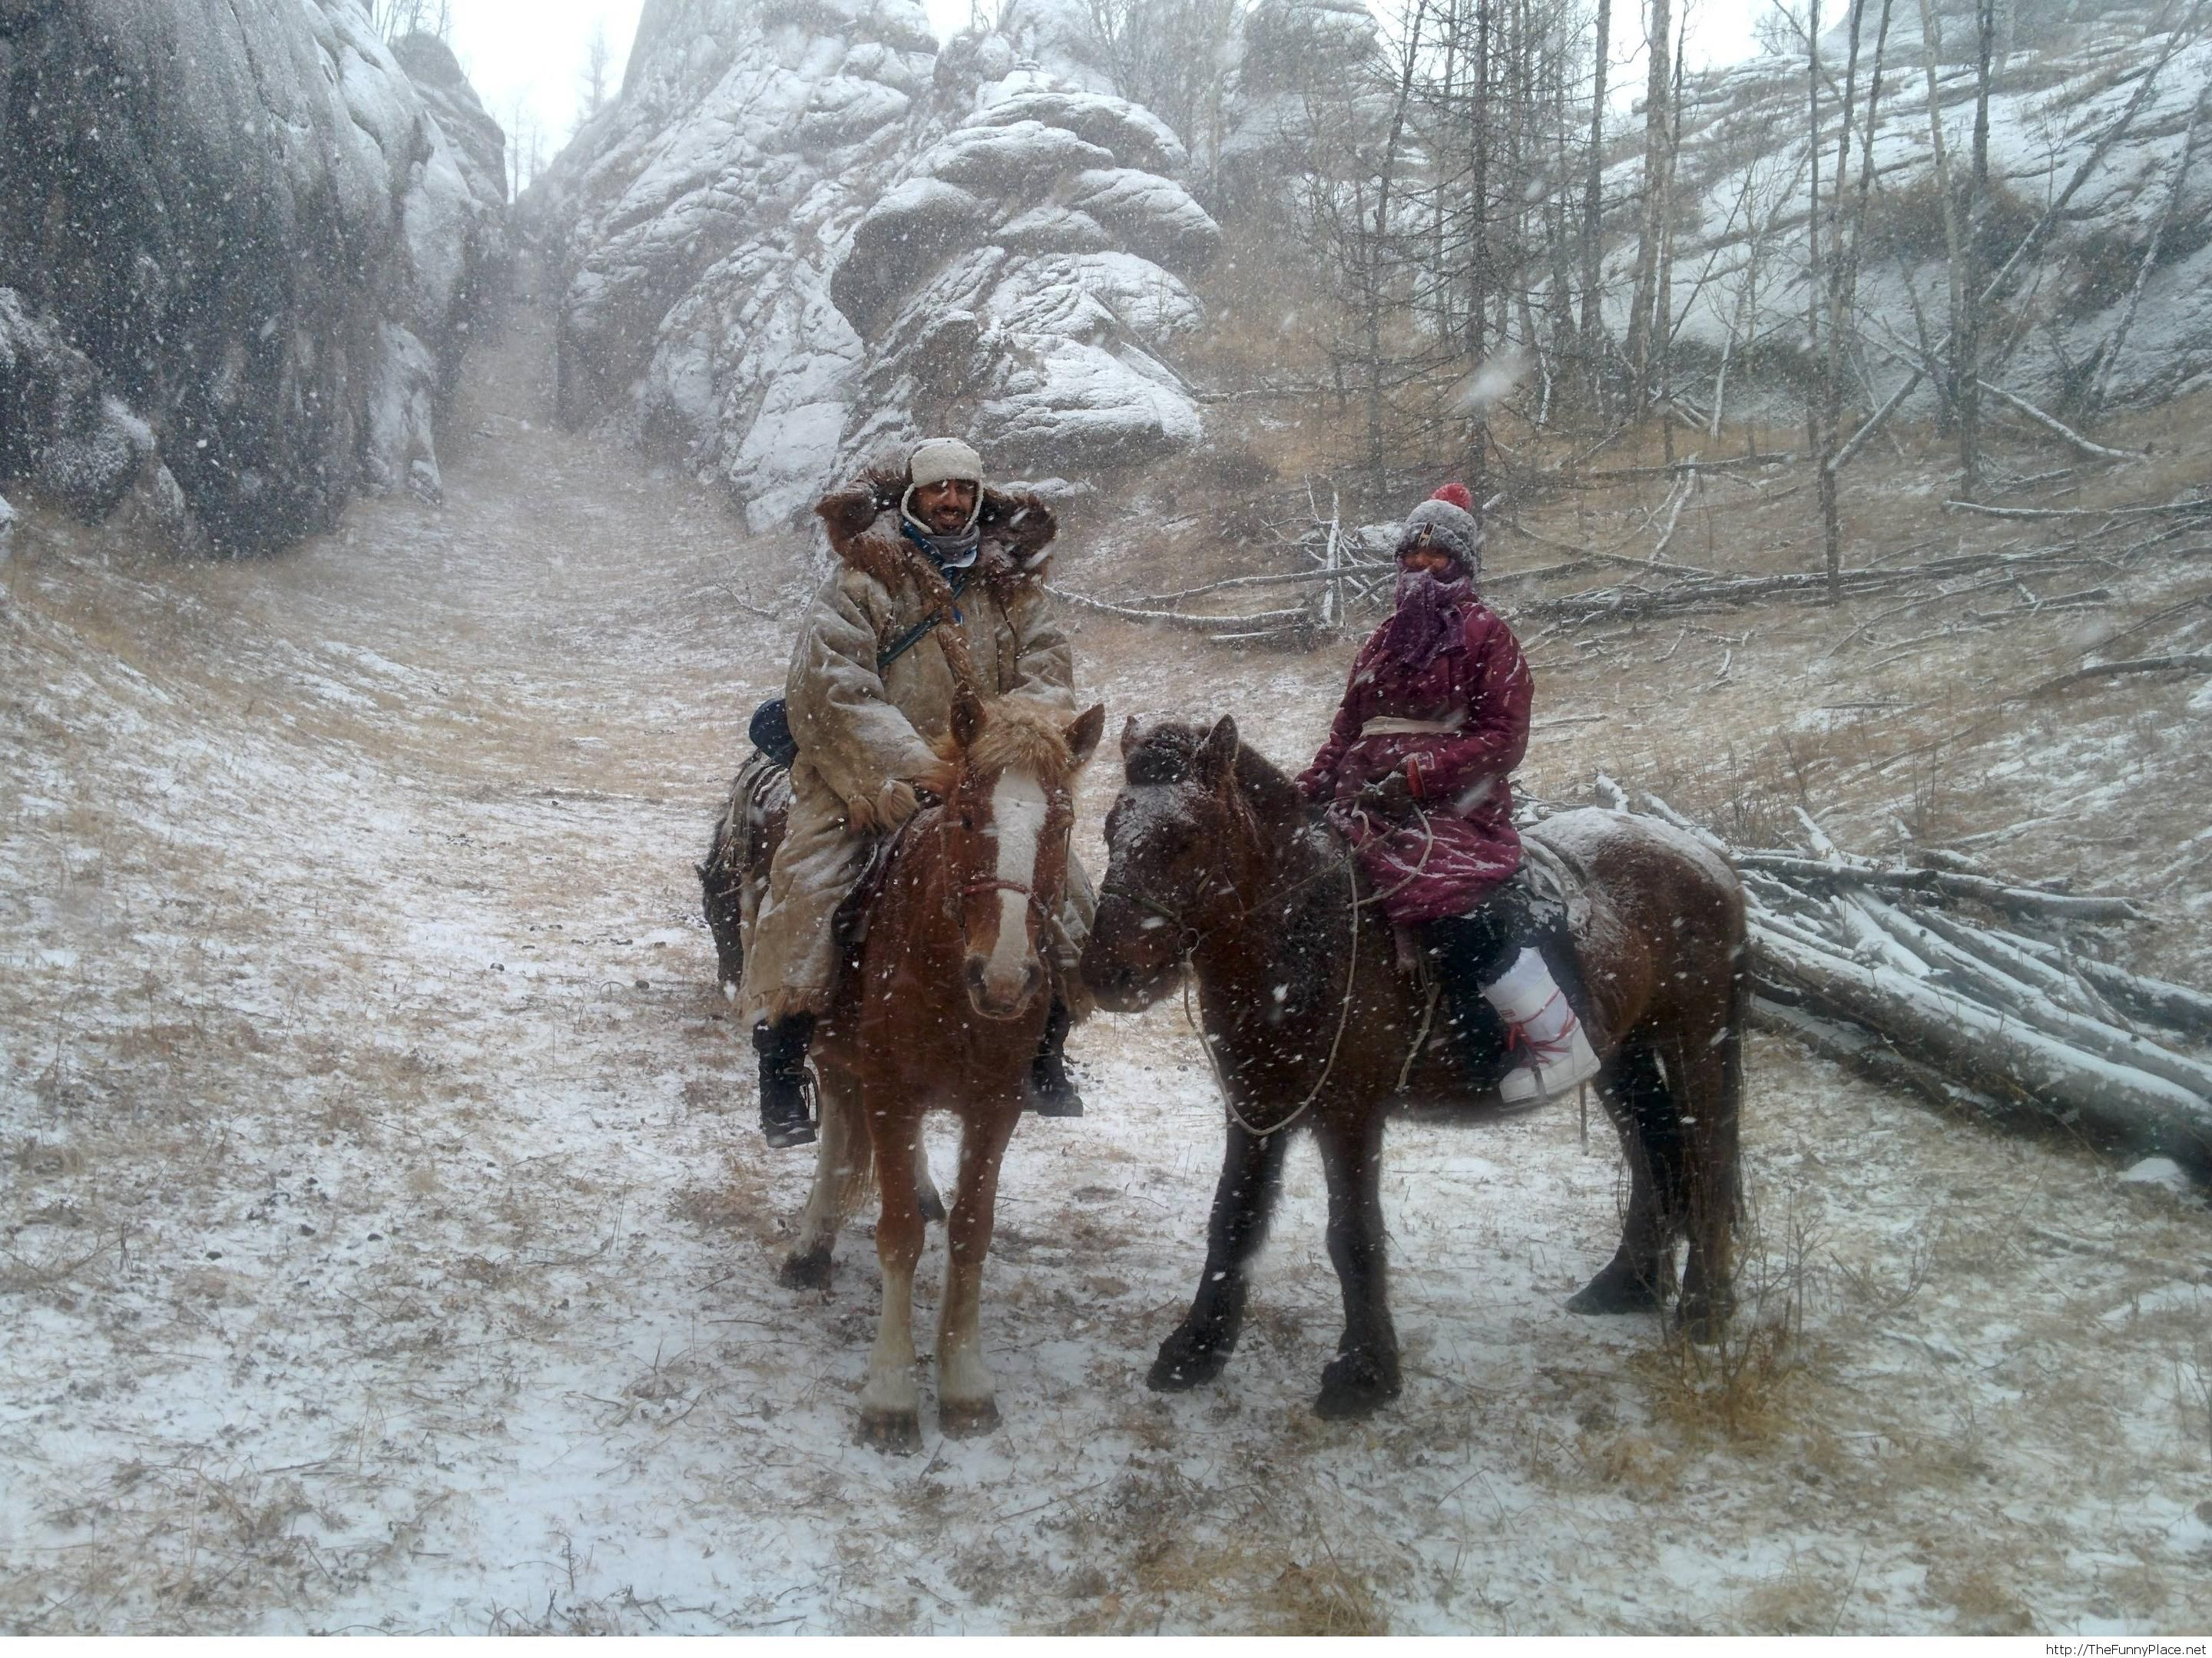 Horse riding in Mongolia's harsh winter. Took a wrong turn into Skyrim.